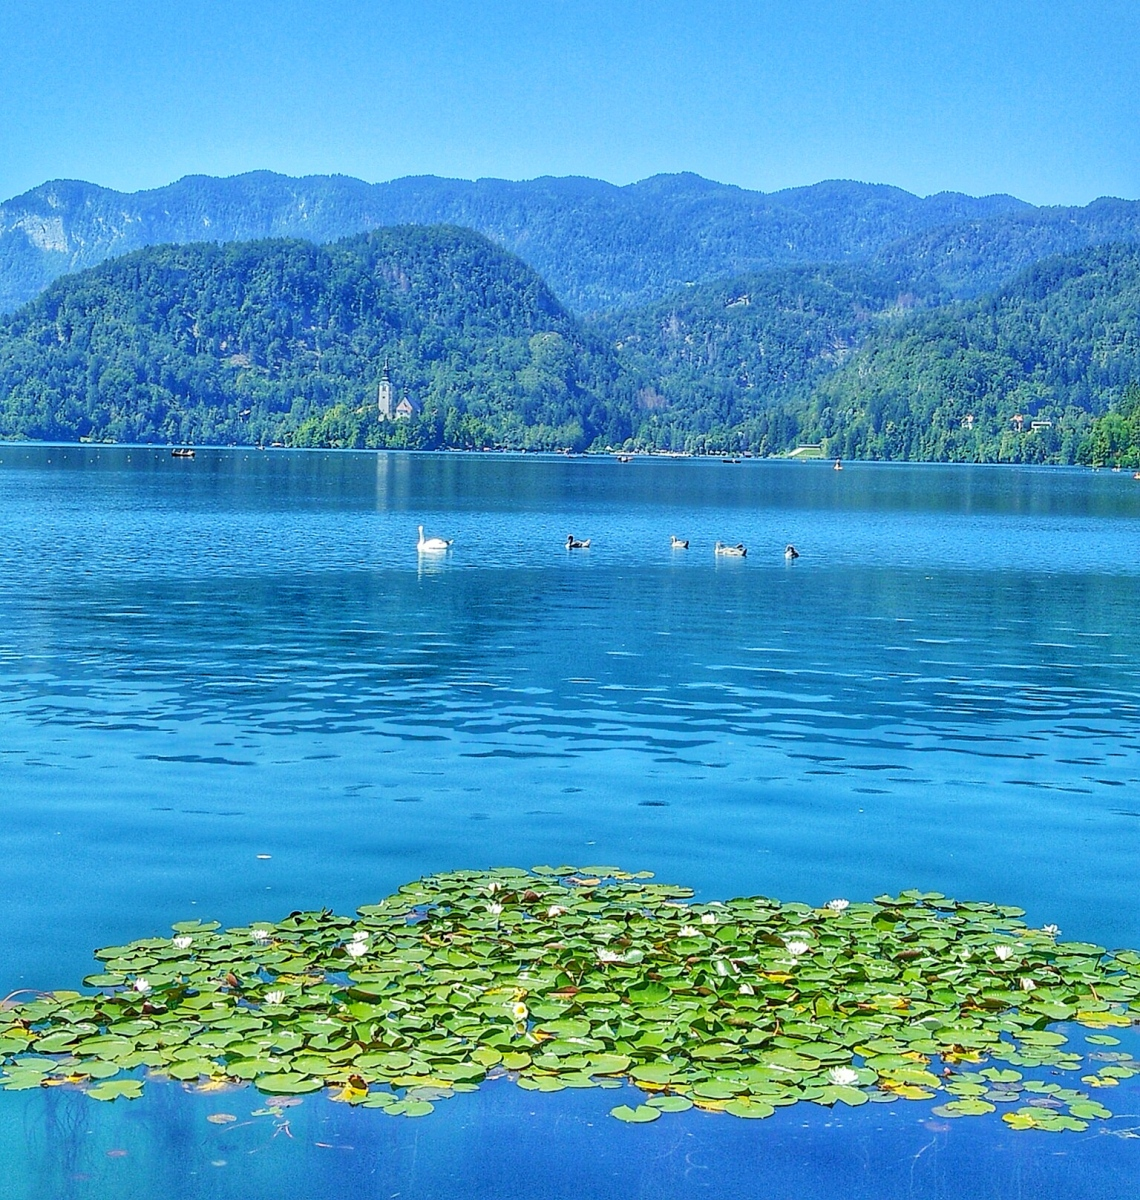 Beautiful Lake House Homes: Things To Do In Ljubljana & The Beautiful Lake Bled